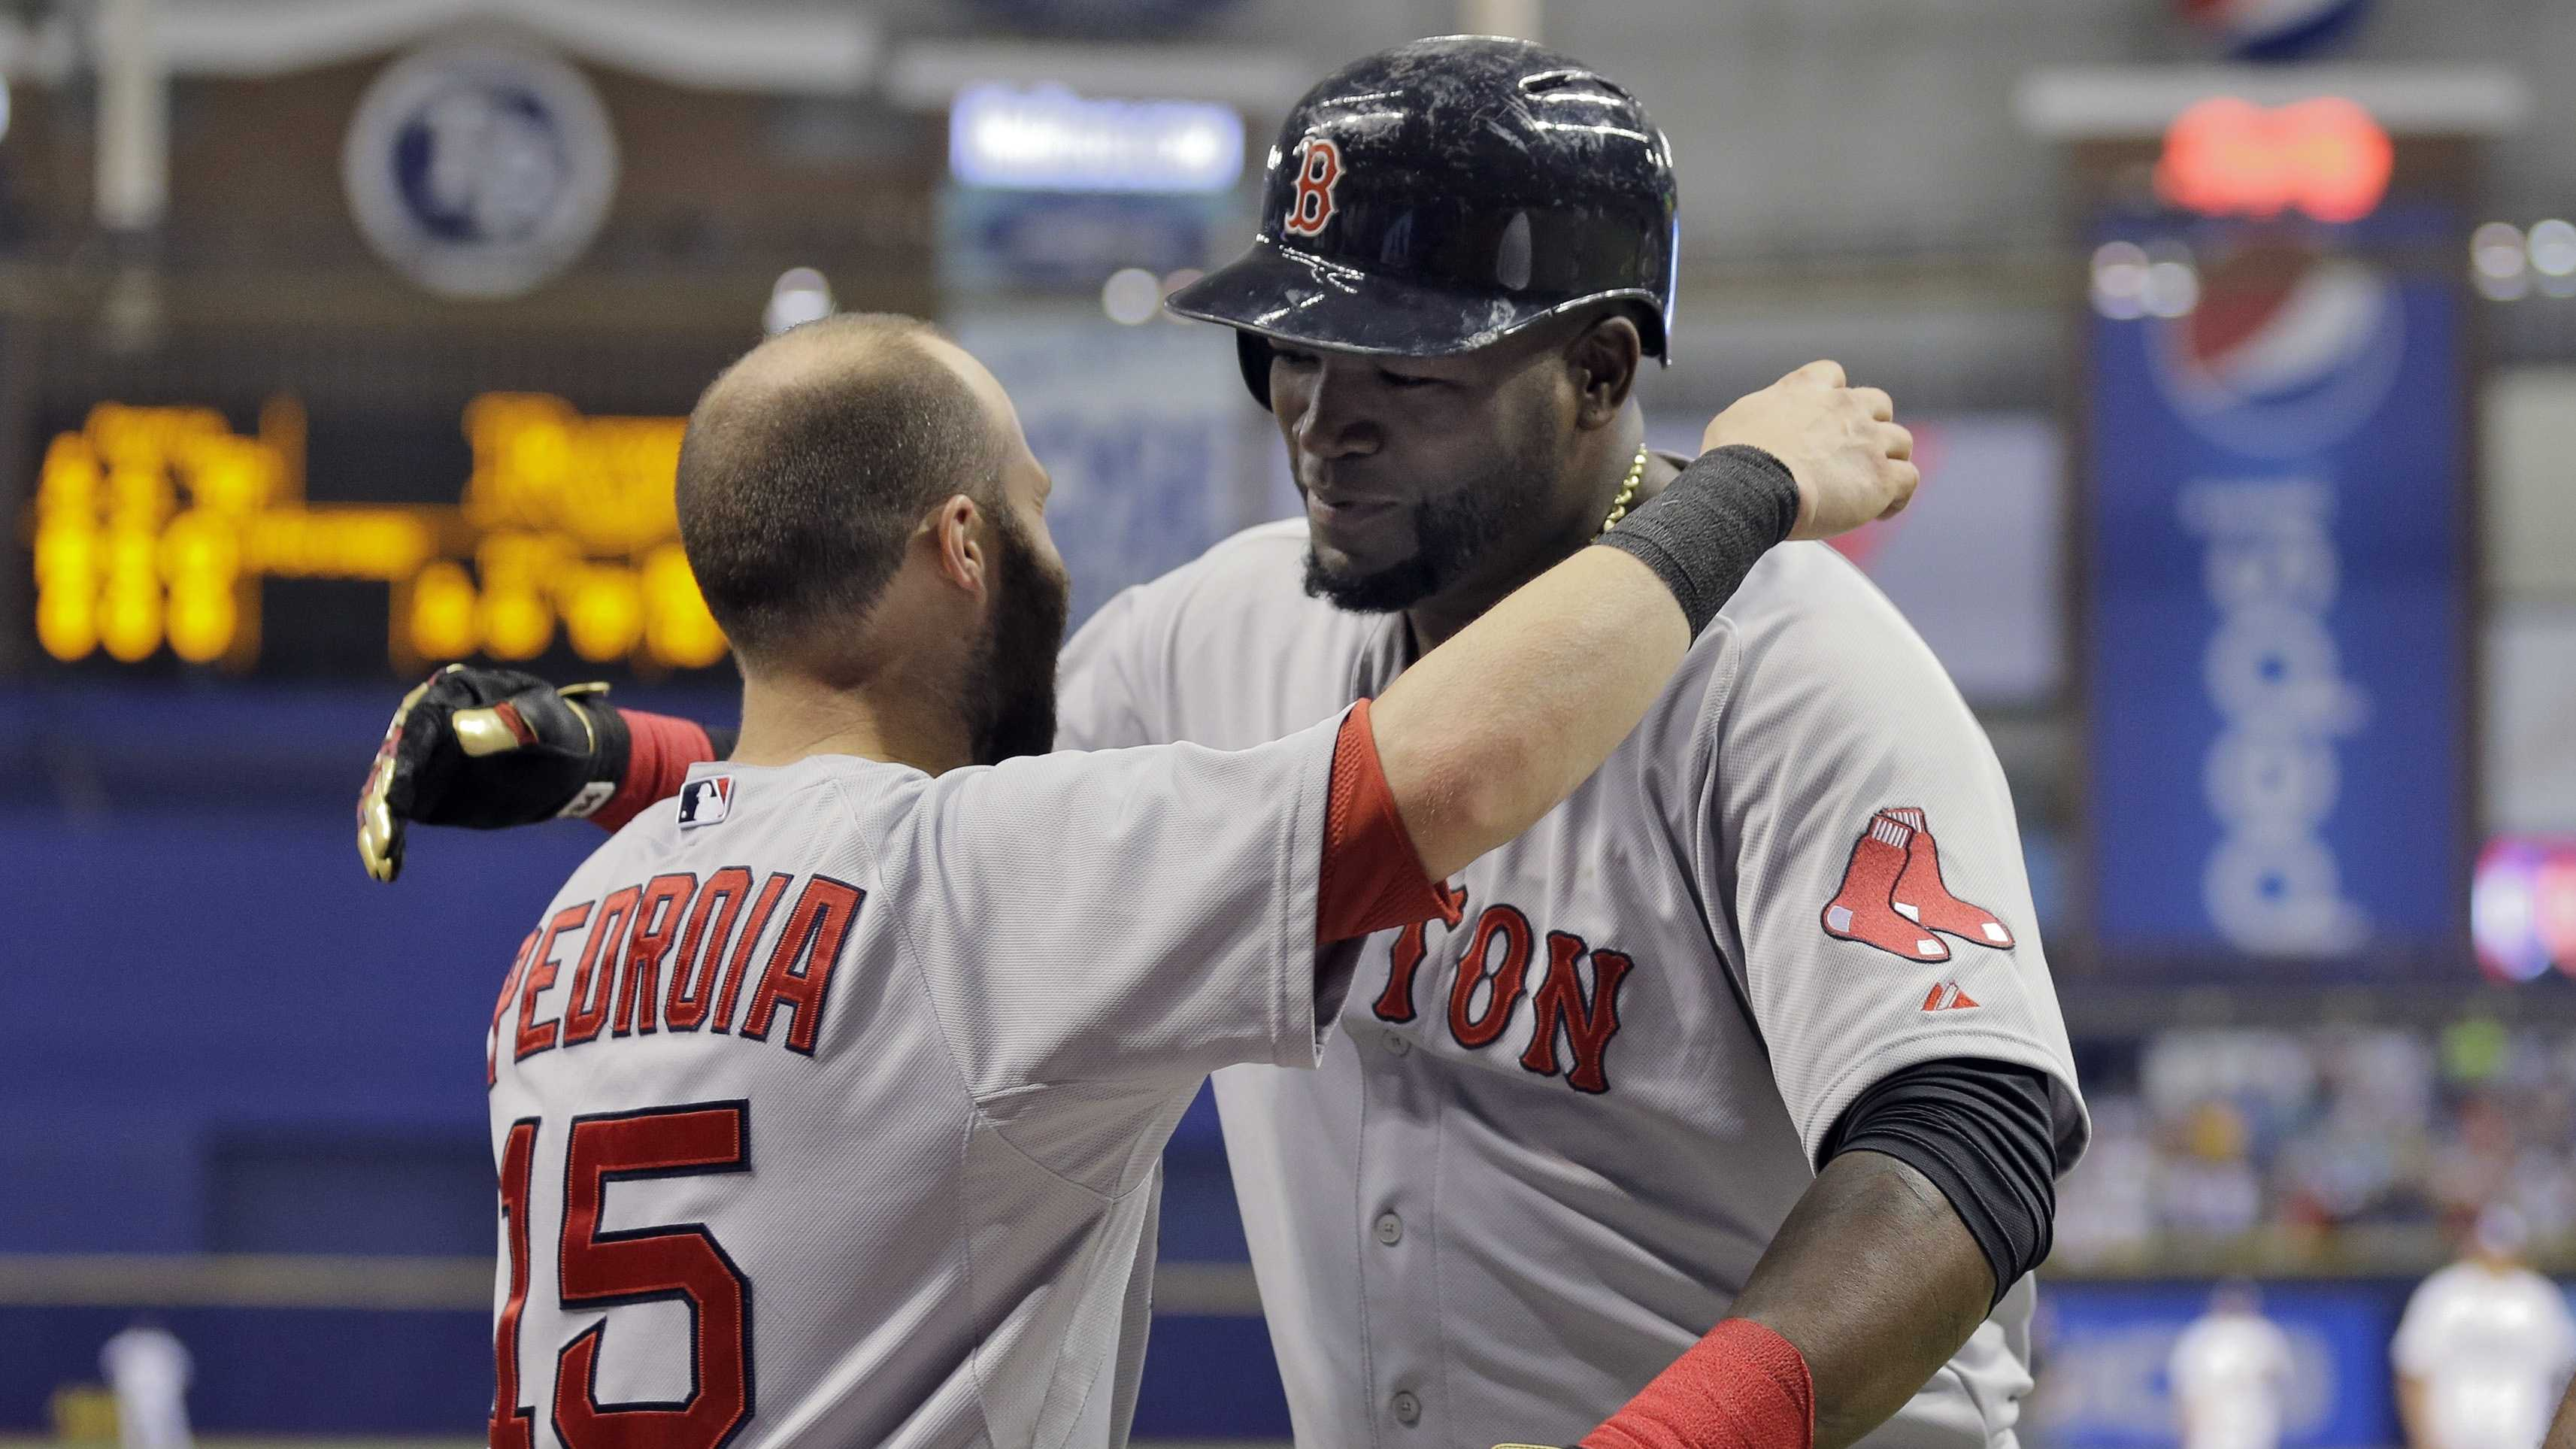 Boston Red Sox's David Ortiz, right, hugs Dustin Pedroia after Ortiz hit his 500th career home run off Tampa Bay Rays starting pitcher Matt Moore during the fifth inning of a baseball game Saturday, Sept. 12, 2015, in St. Petersburg, Fla.